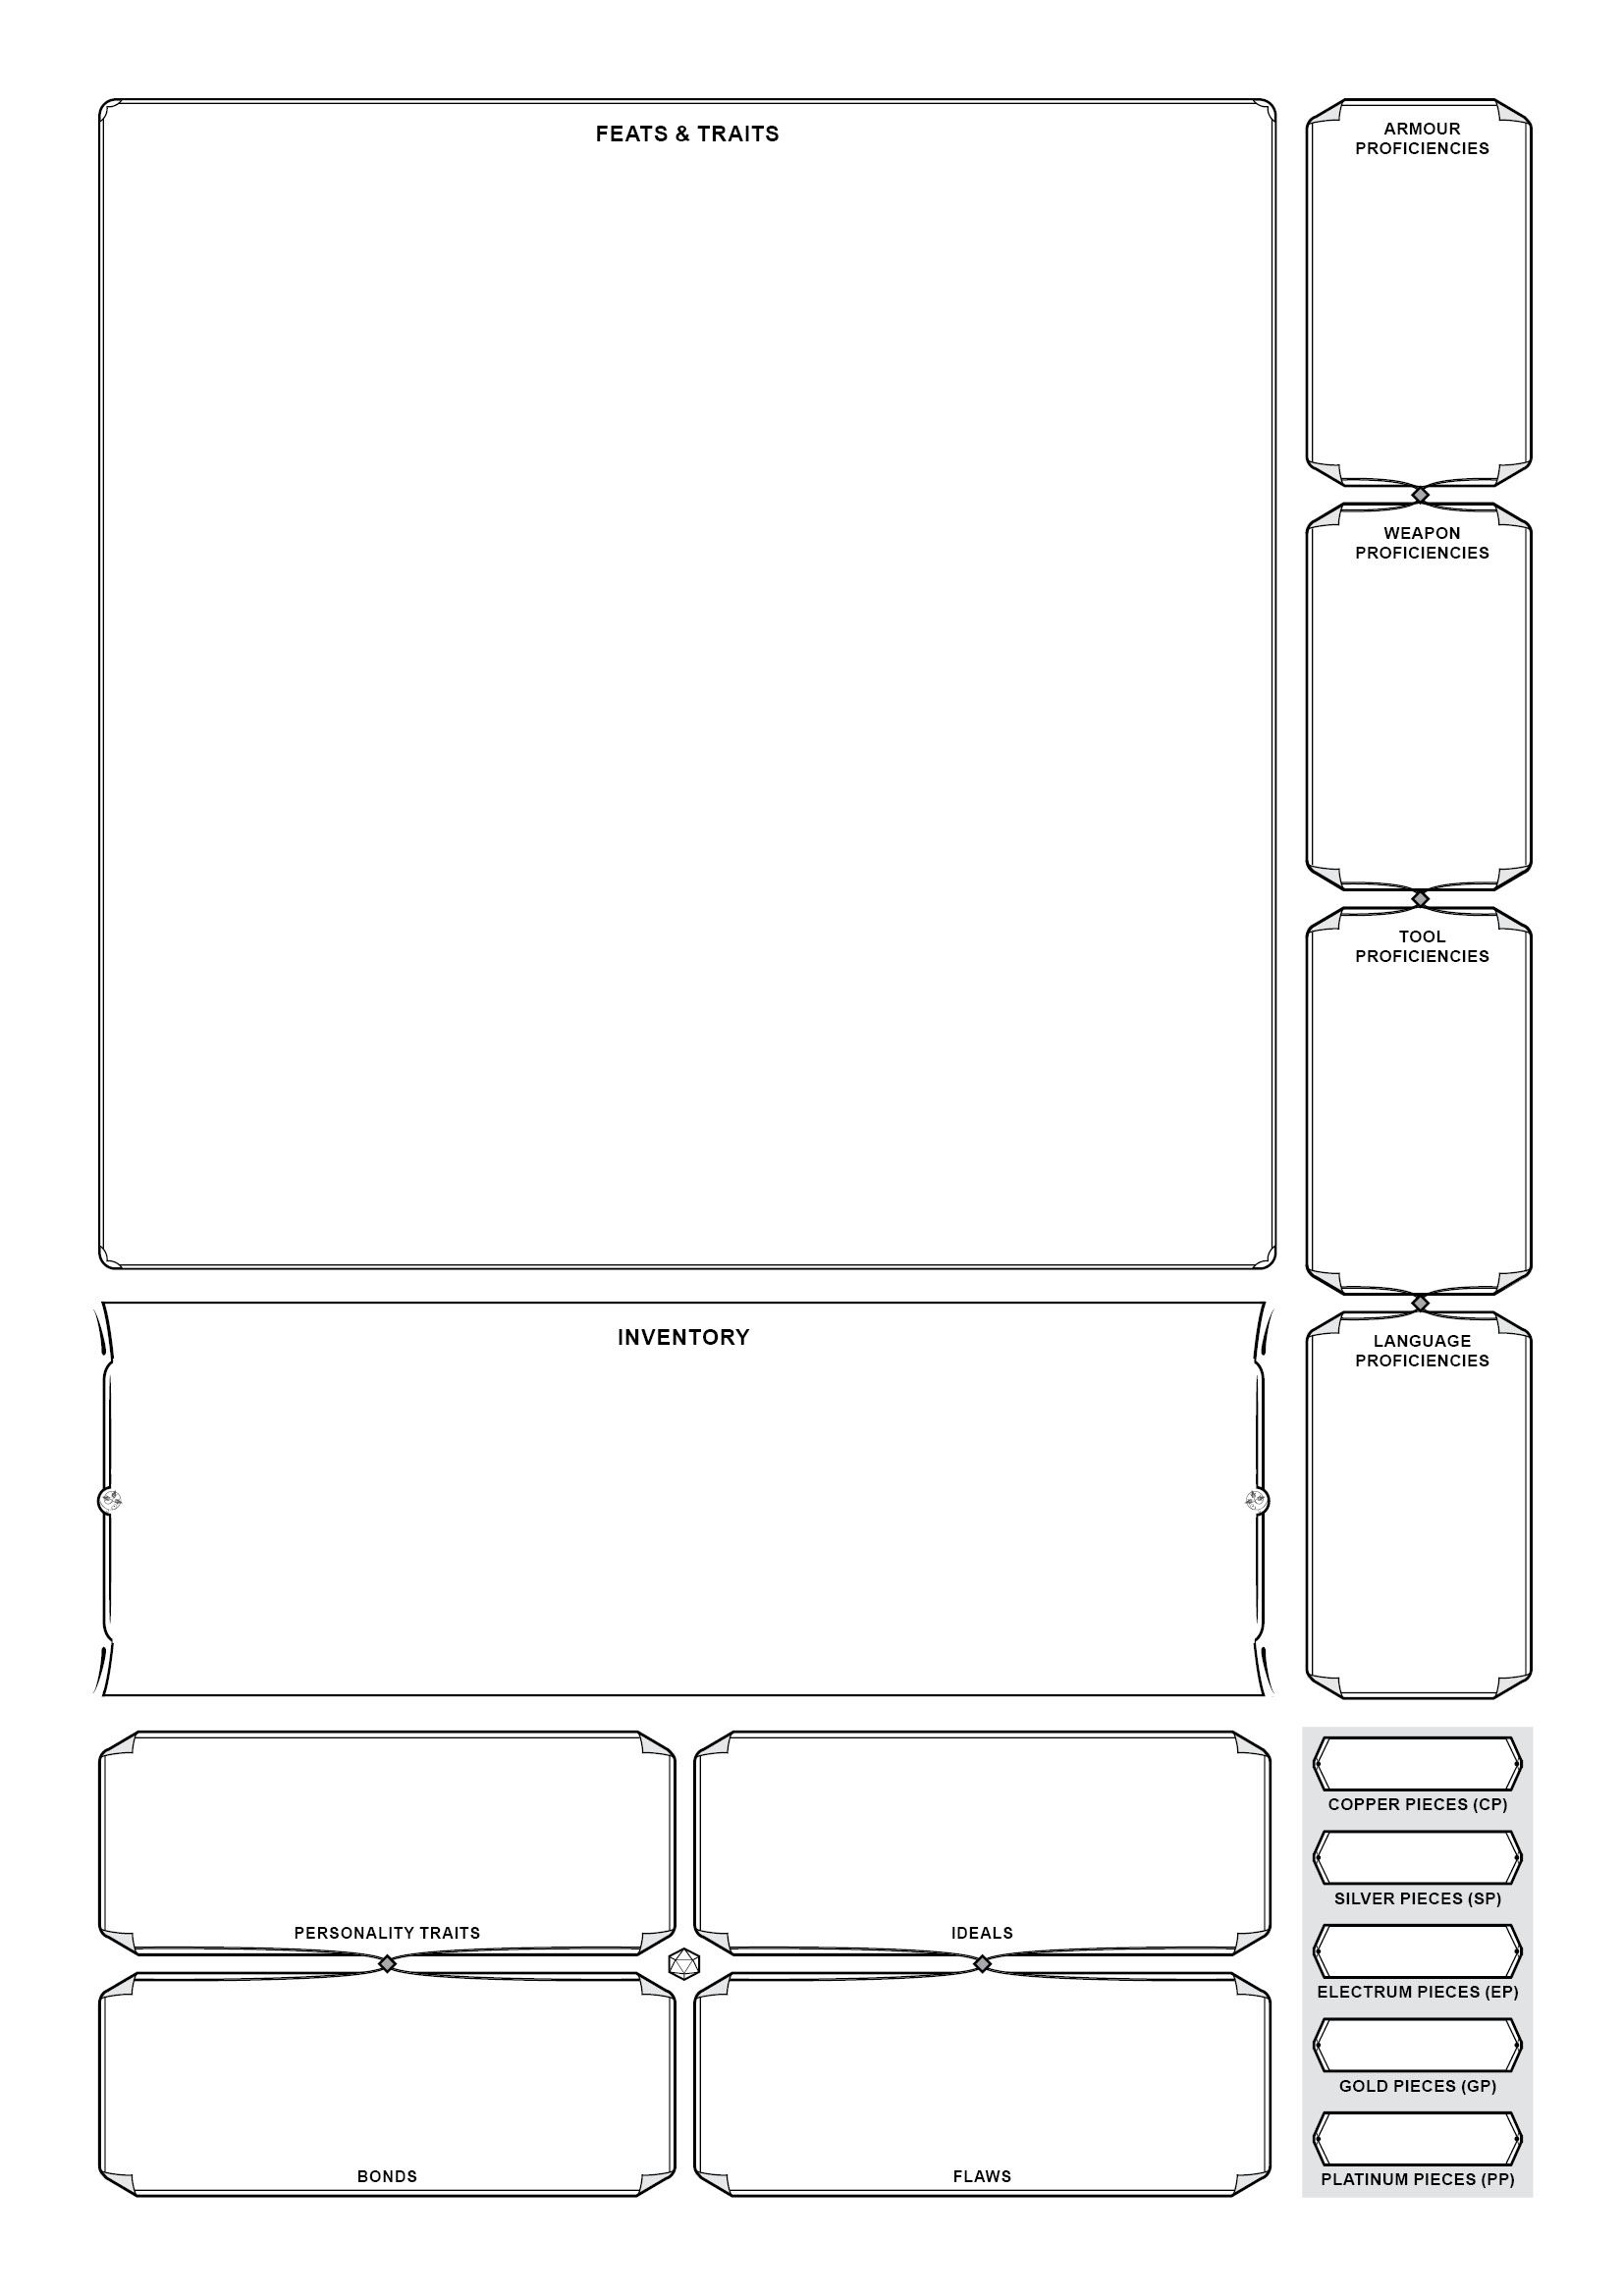 photo relating to 5e Character Sheet Printable identify Matthew Perkins